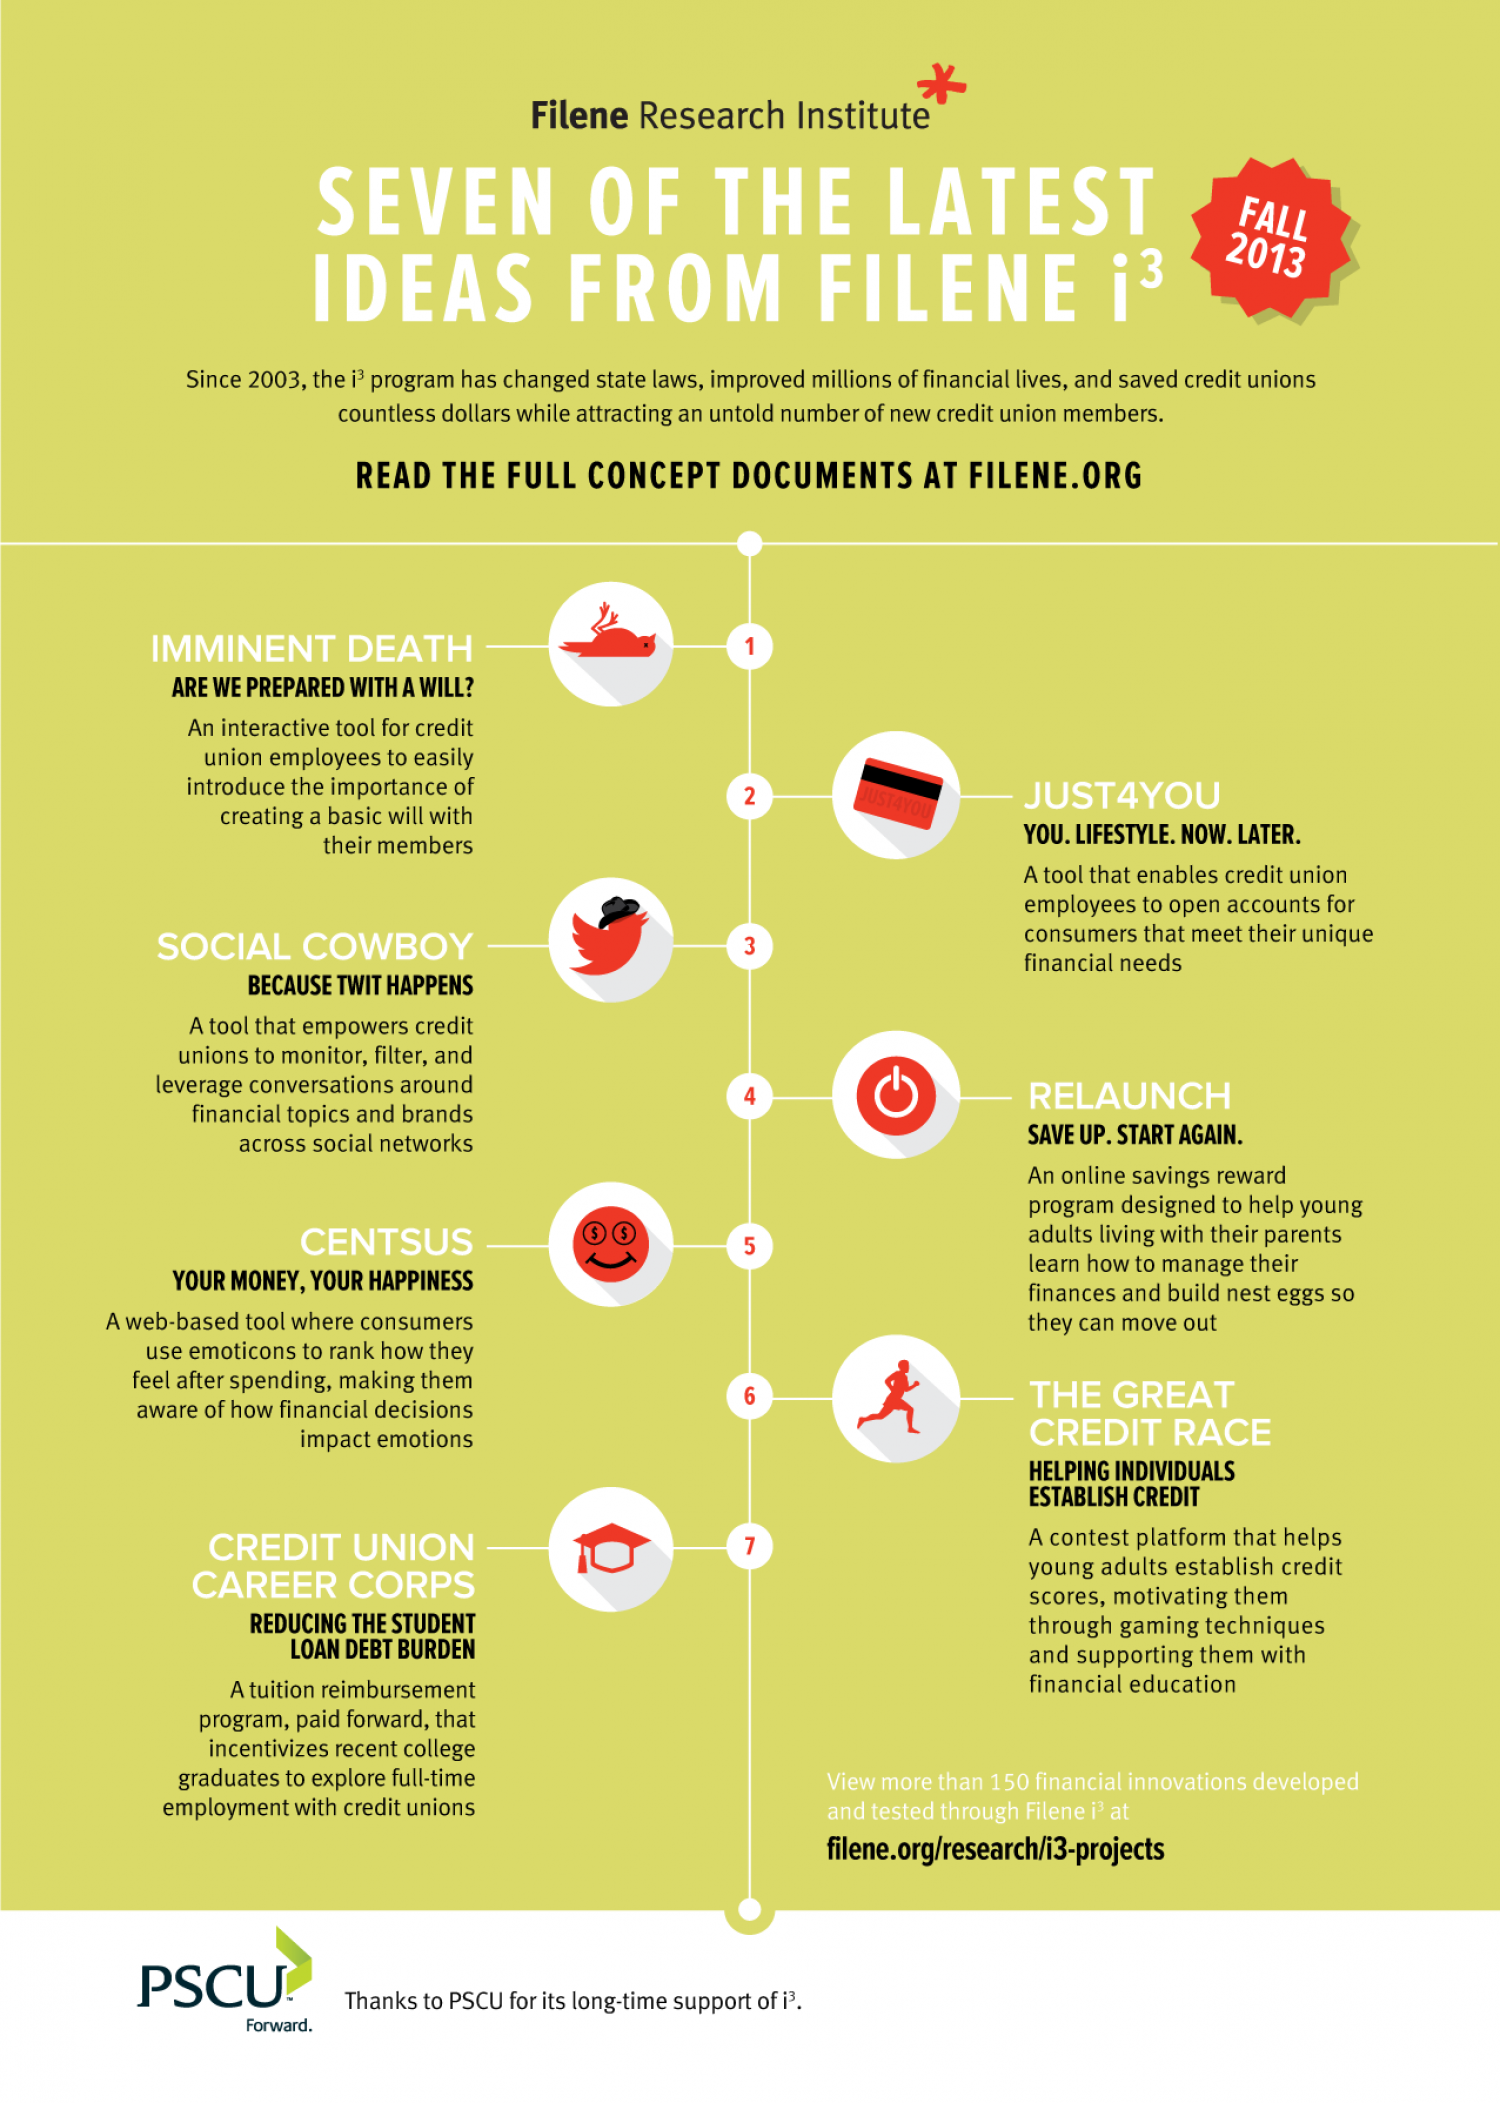 Seven of the Latest Ideas from Filene i3 (Fall 2013) Infographic